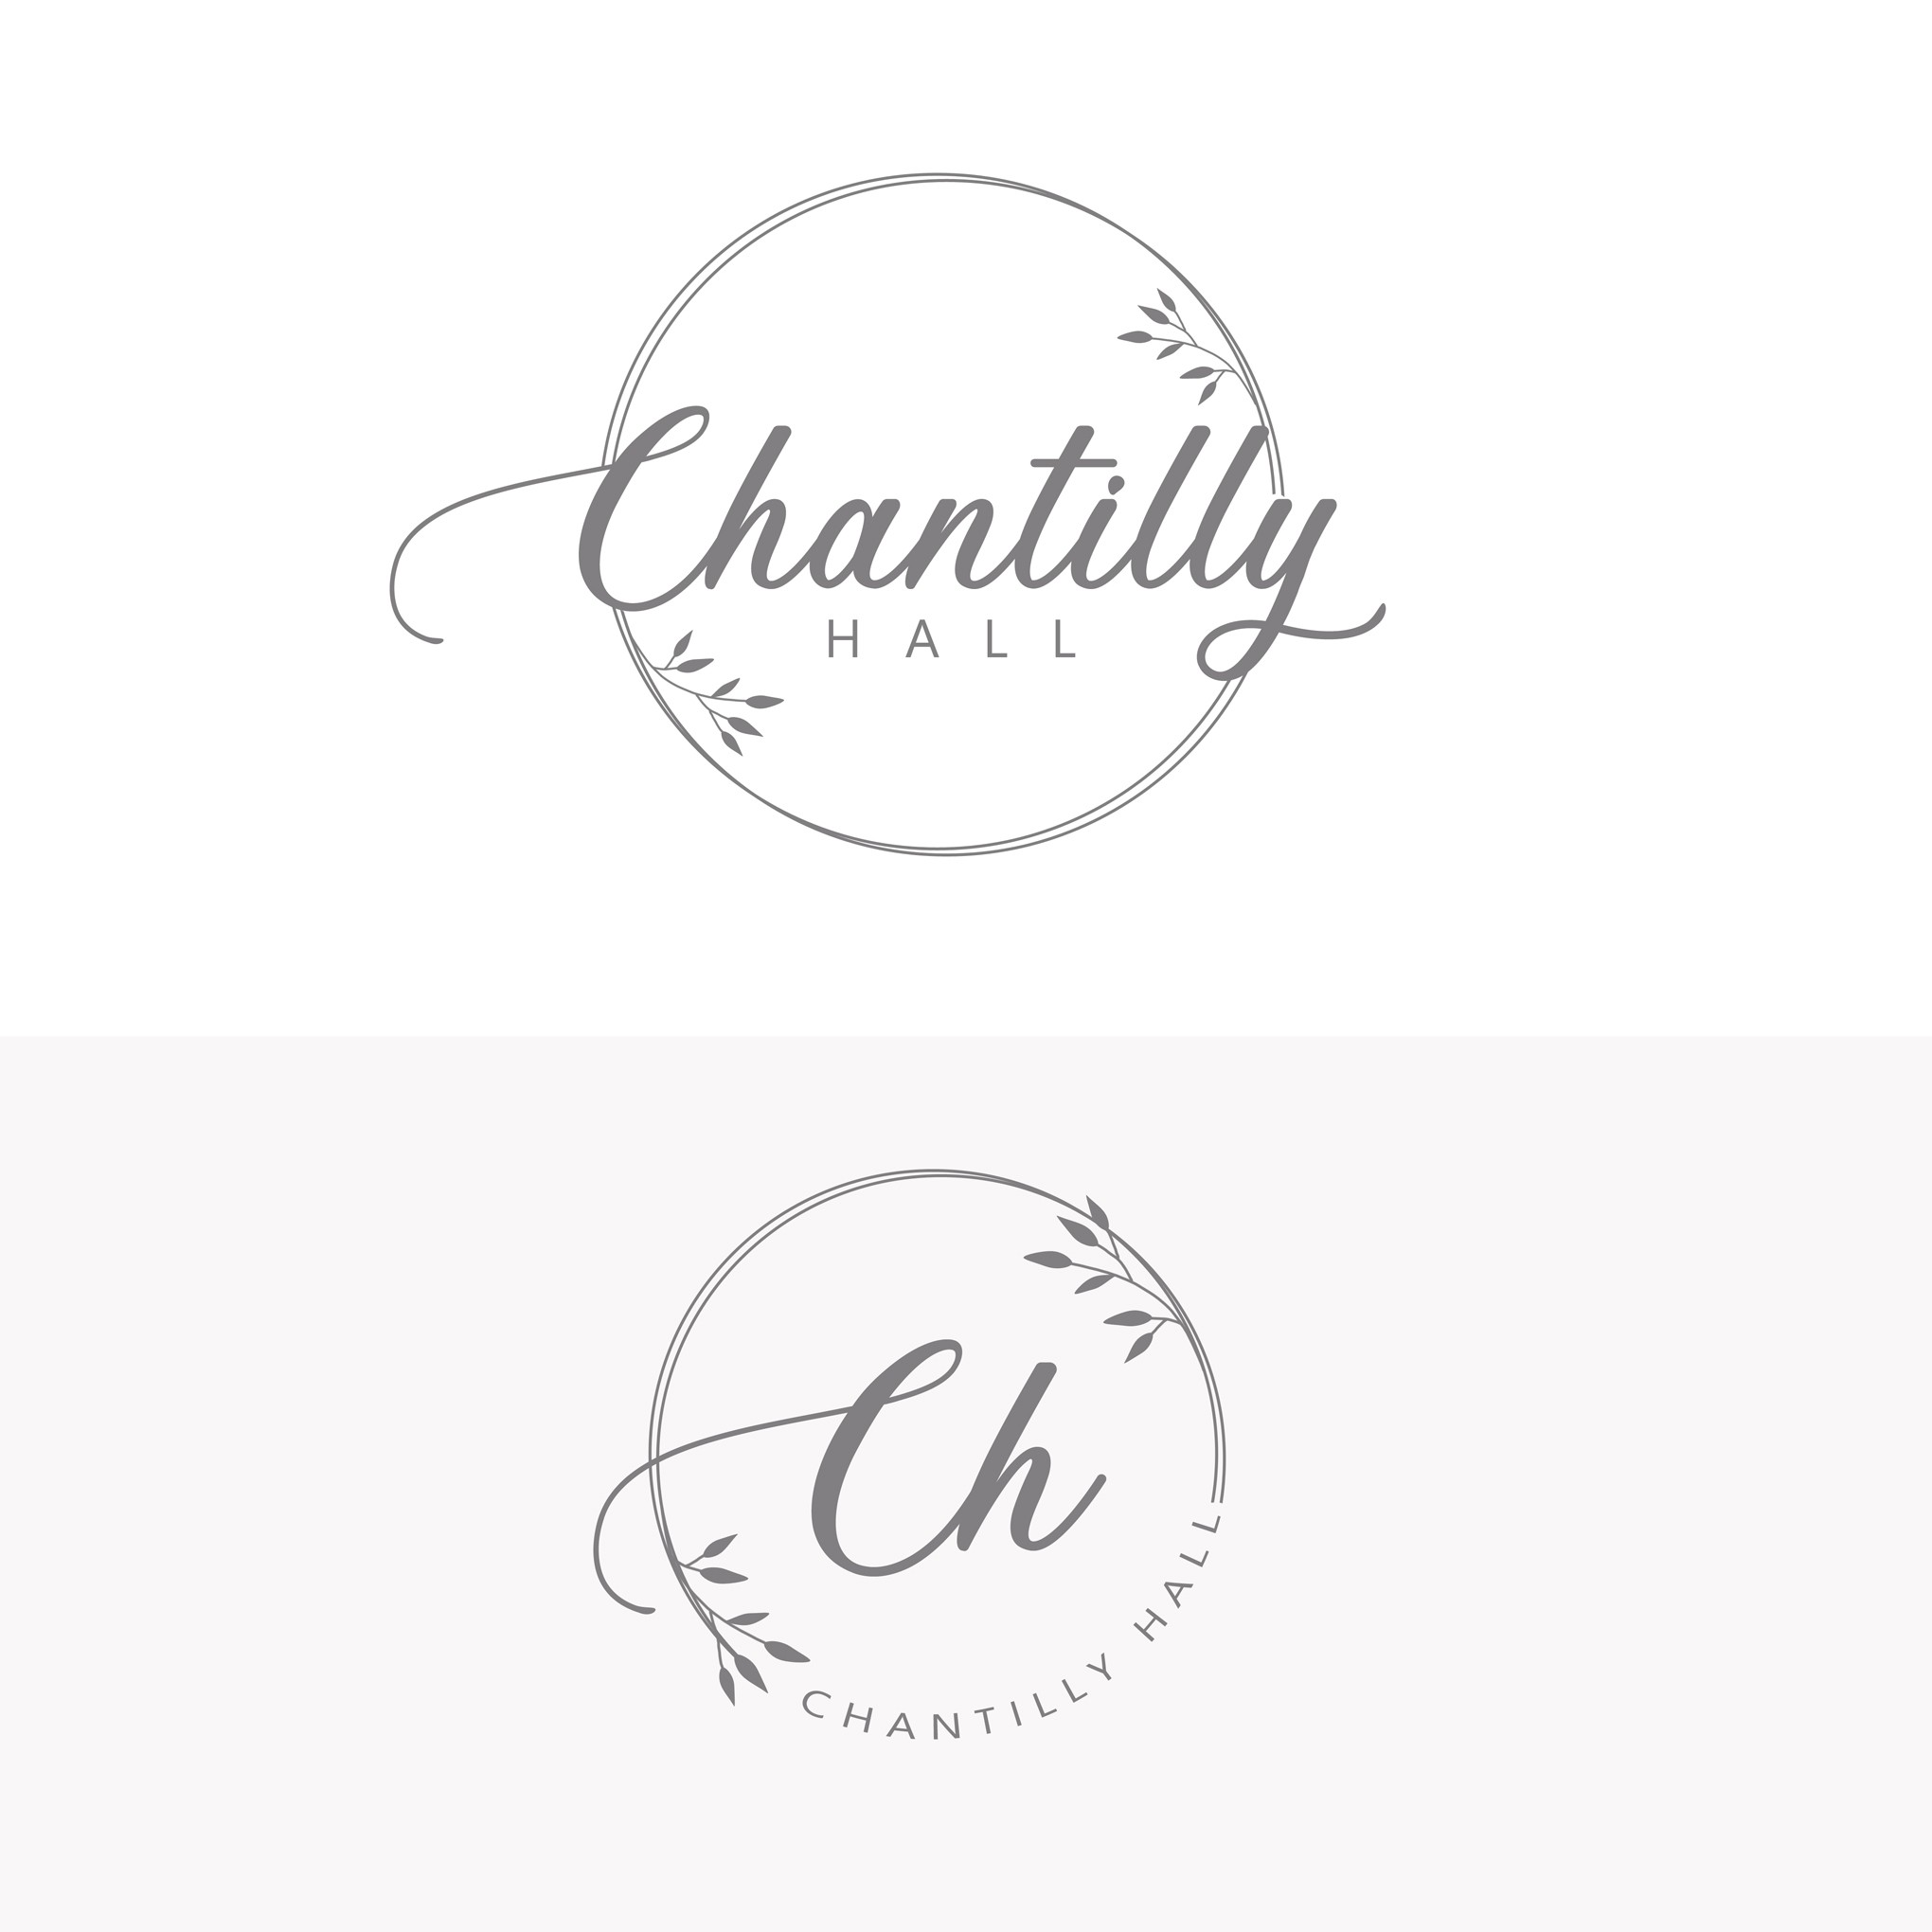 A logo for an elegant and classy wedding venue that is on the top floor of a historic building